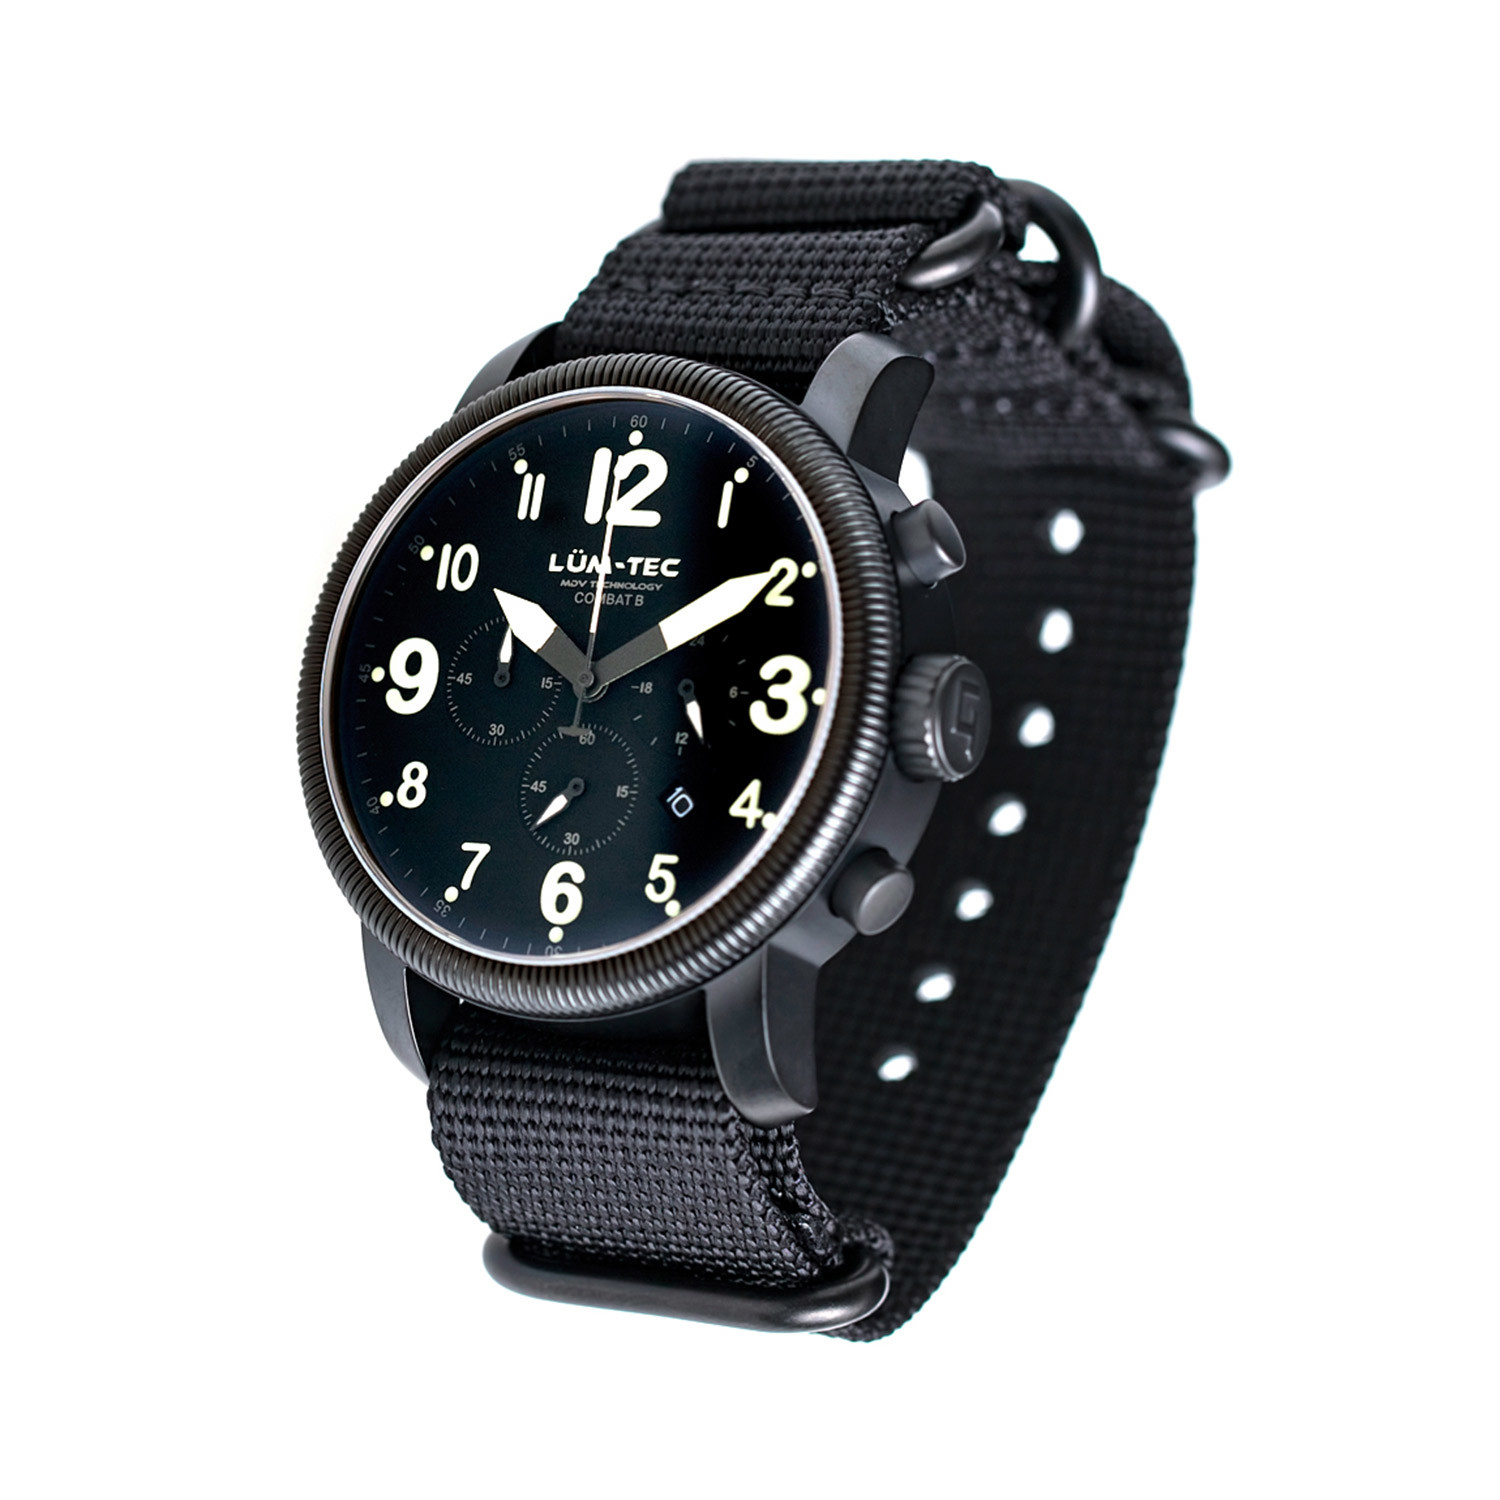 mg combat m watches l bronze tec lum crop